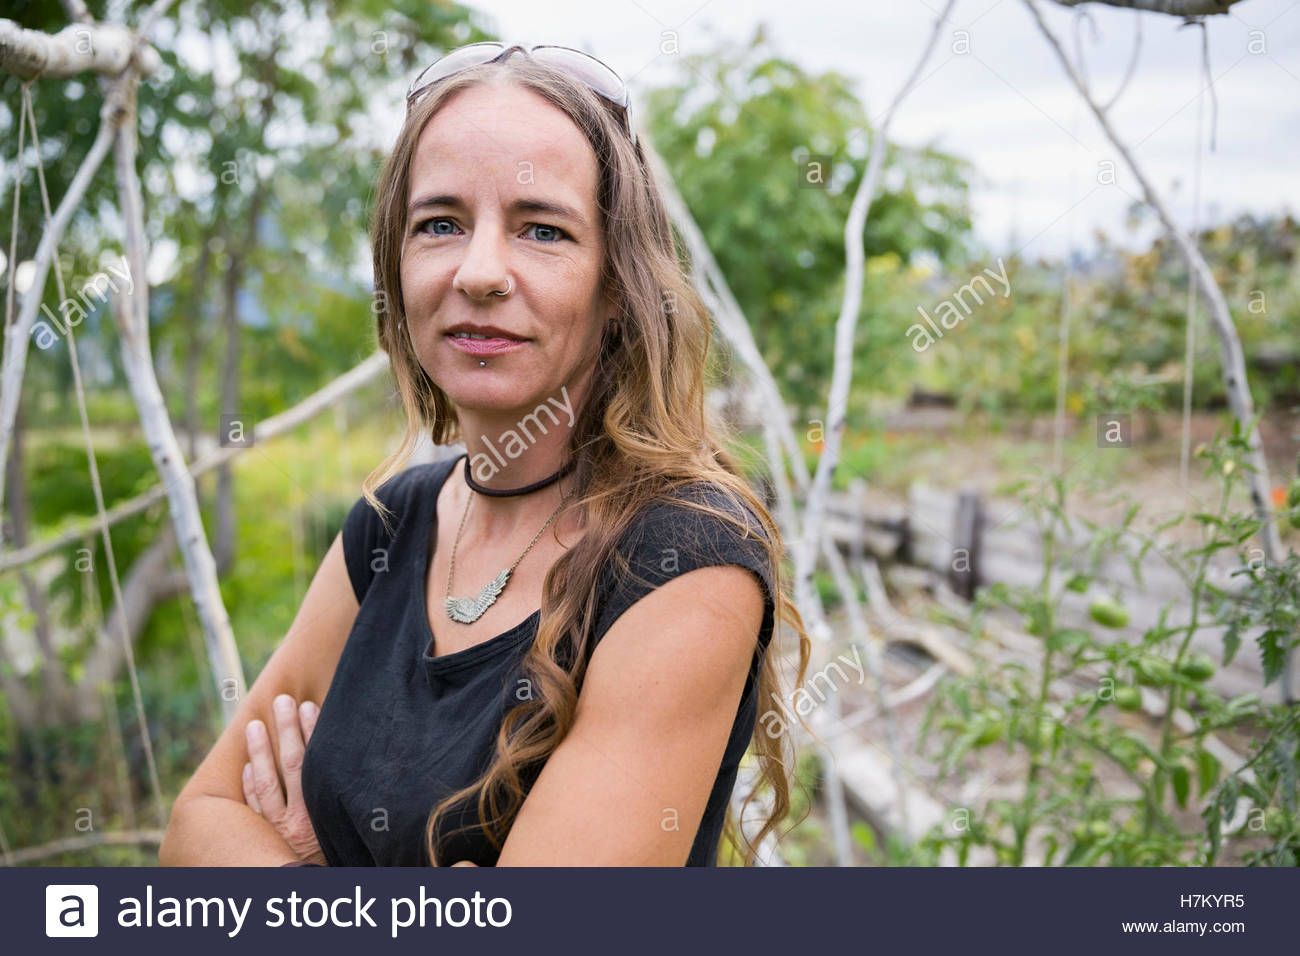 Portrait confident woman with arms crossed in vegetable garden - Stock Image